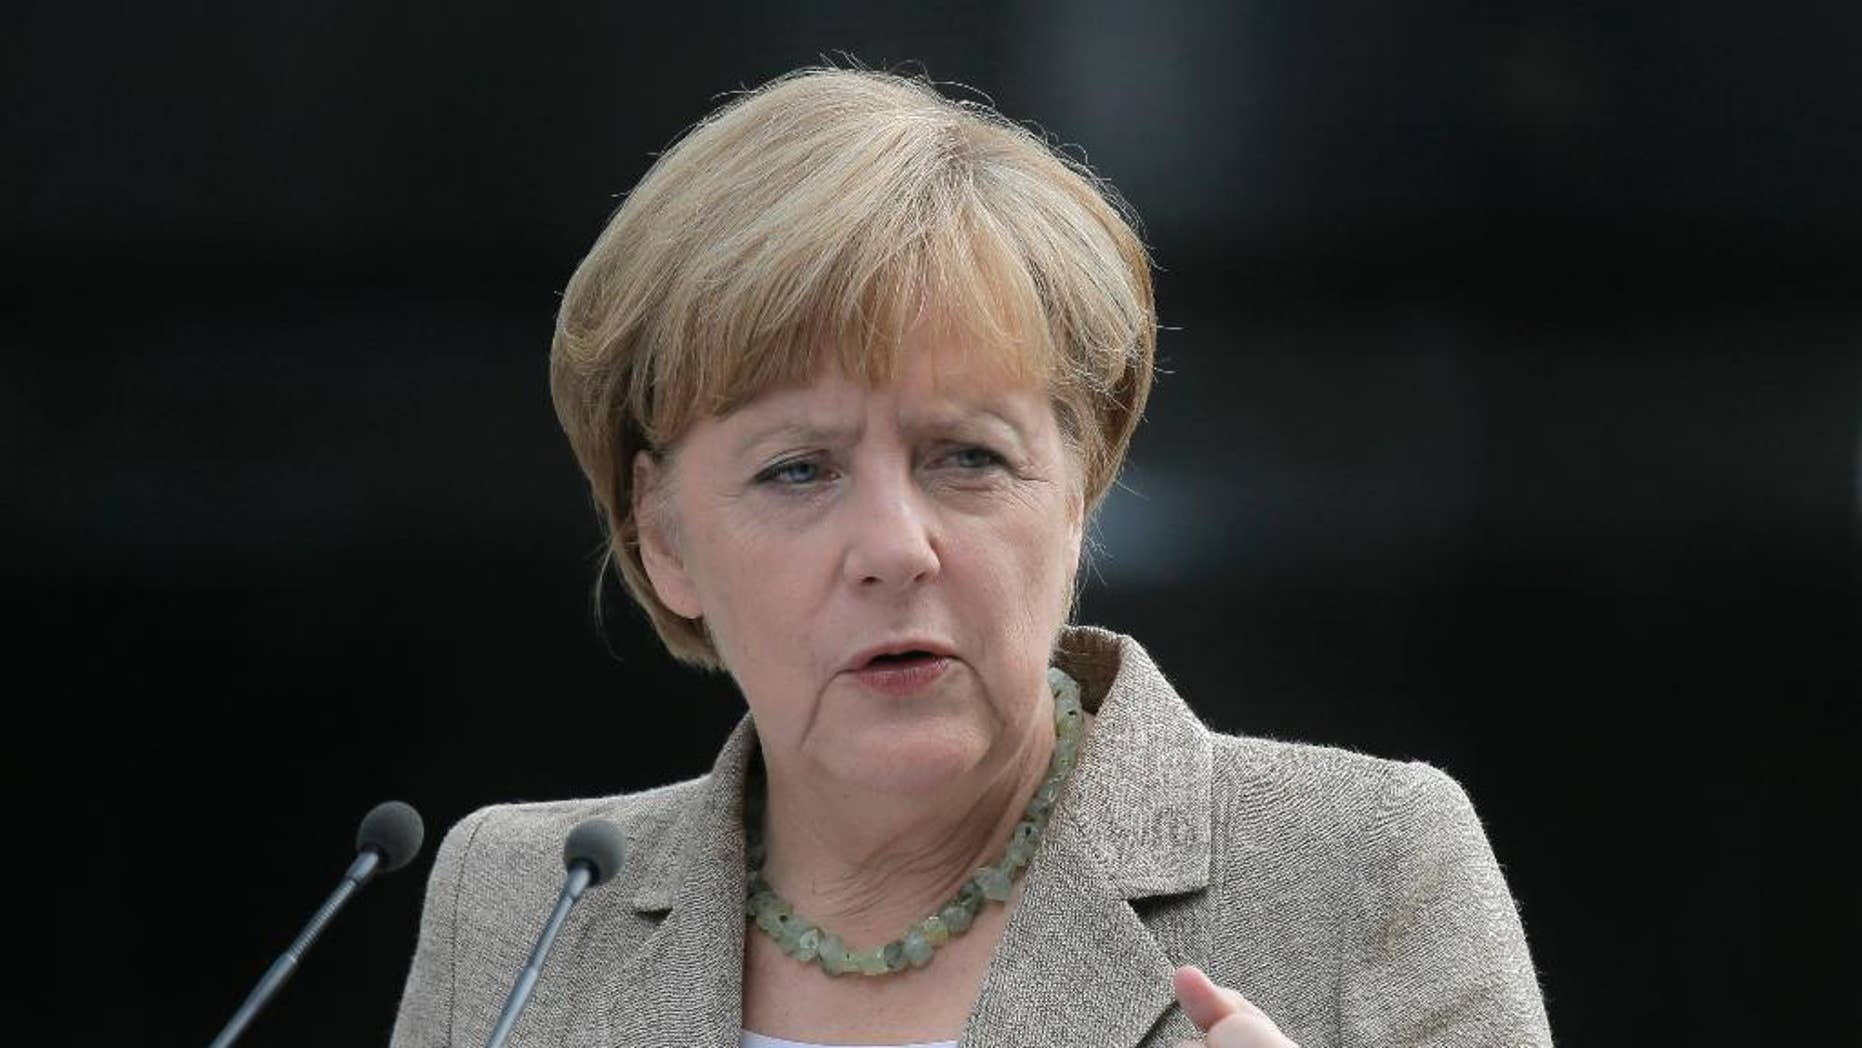 German chancellor Angela Merkel make a statement to the press in Kiev, Ukraine, Saturday, Aug. 23, 2014. German Chancellor Angela Merkel, who has advocated a measured European Union response to Russia's aggressive policies in Ukraine, met Saturday in Kiev to meet Ukrainian President Petro Poroshenko and said she urged a political solution to the crisis. Poroshenko, for his part, said Ukraine was willing to try to solve the conflict by talks, but not at the expense of the country's territorial integrity or sovereignty.  (AP Photo/Efrem Lukatsky)